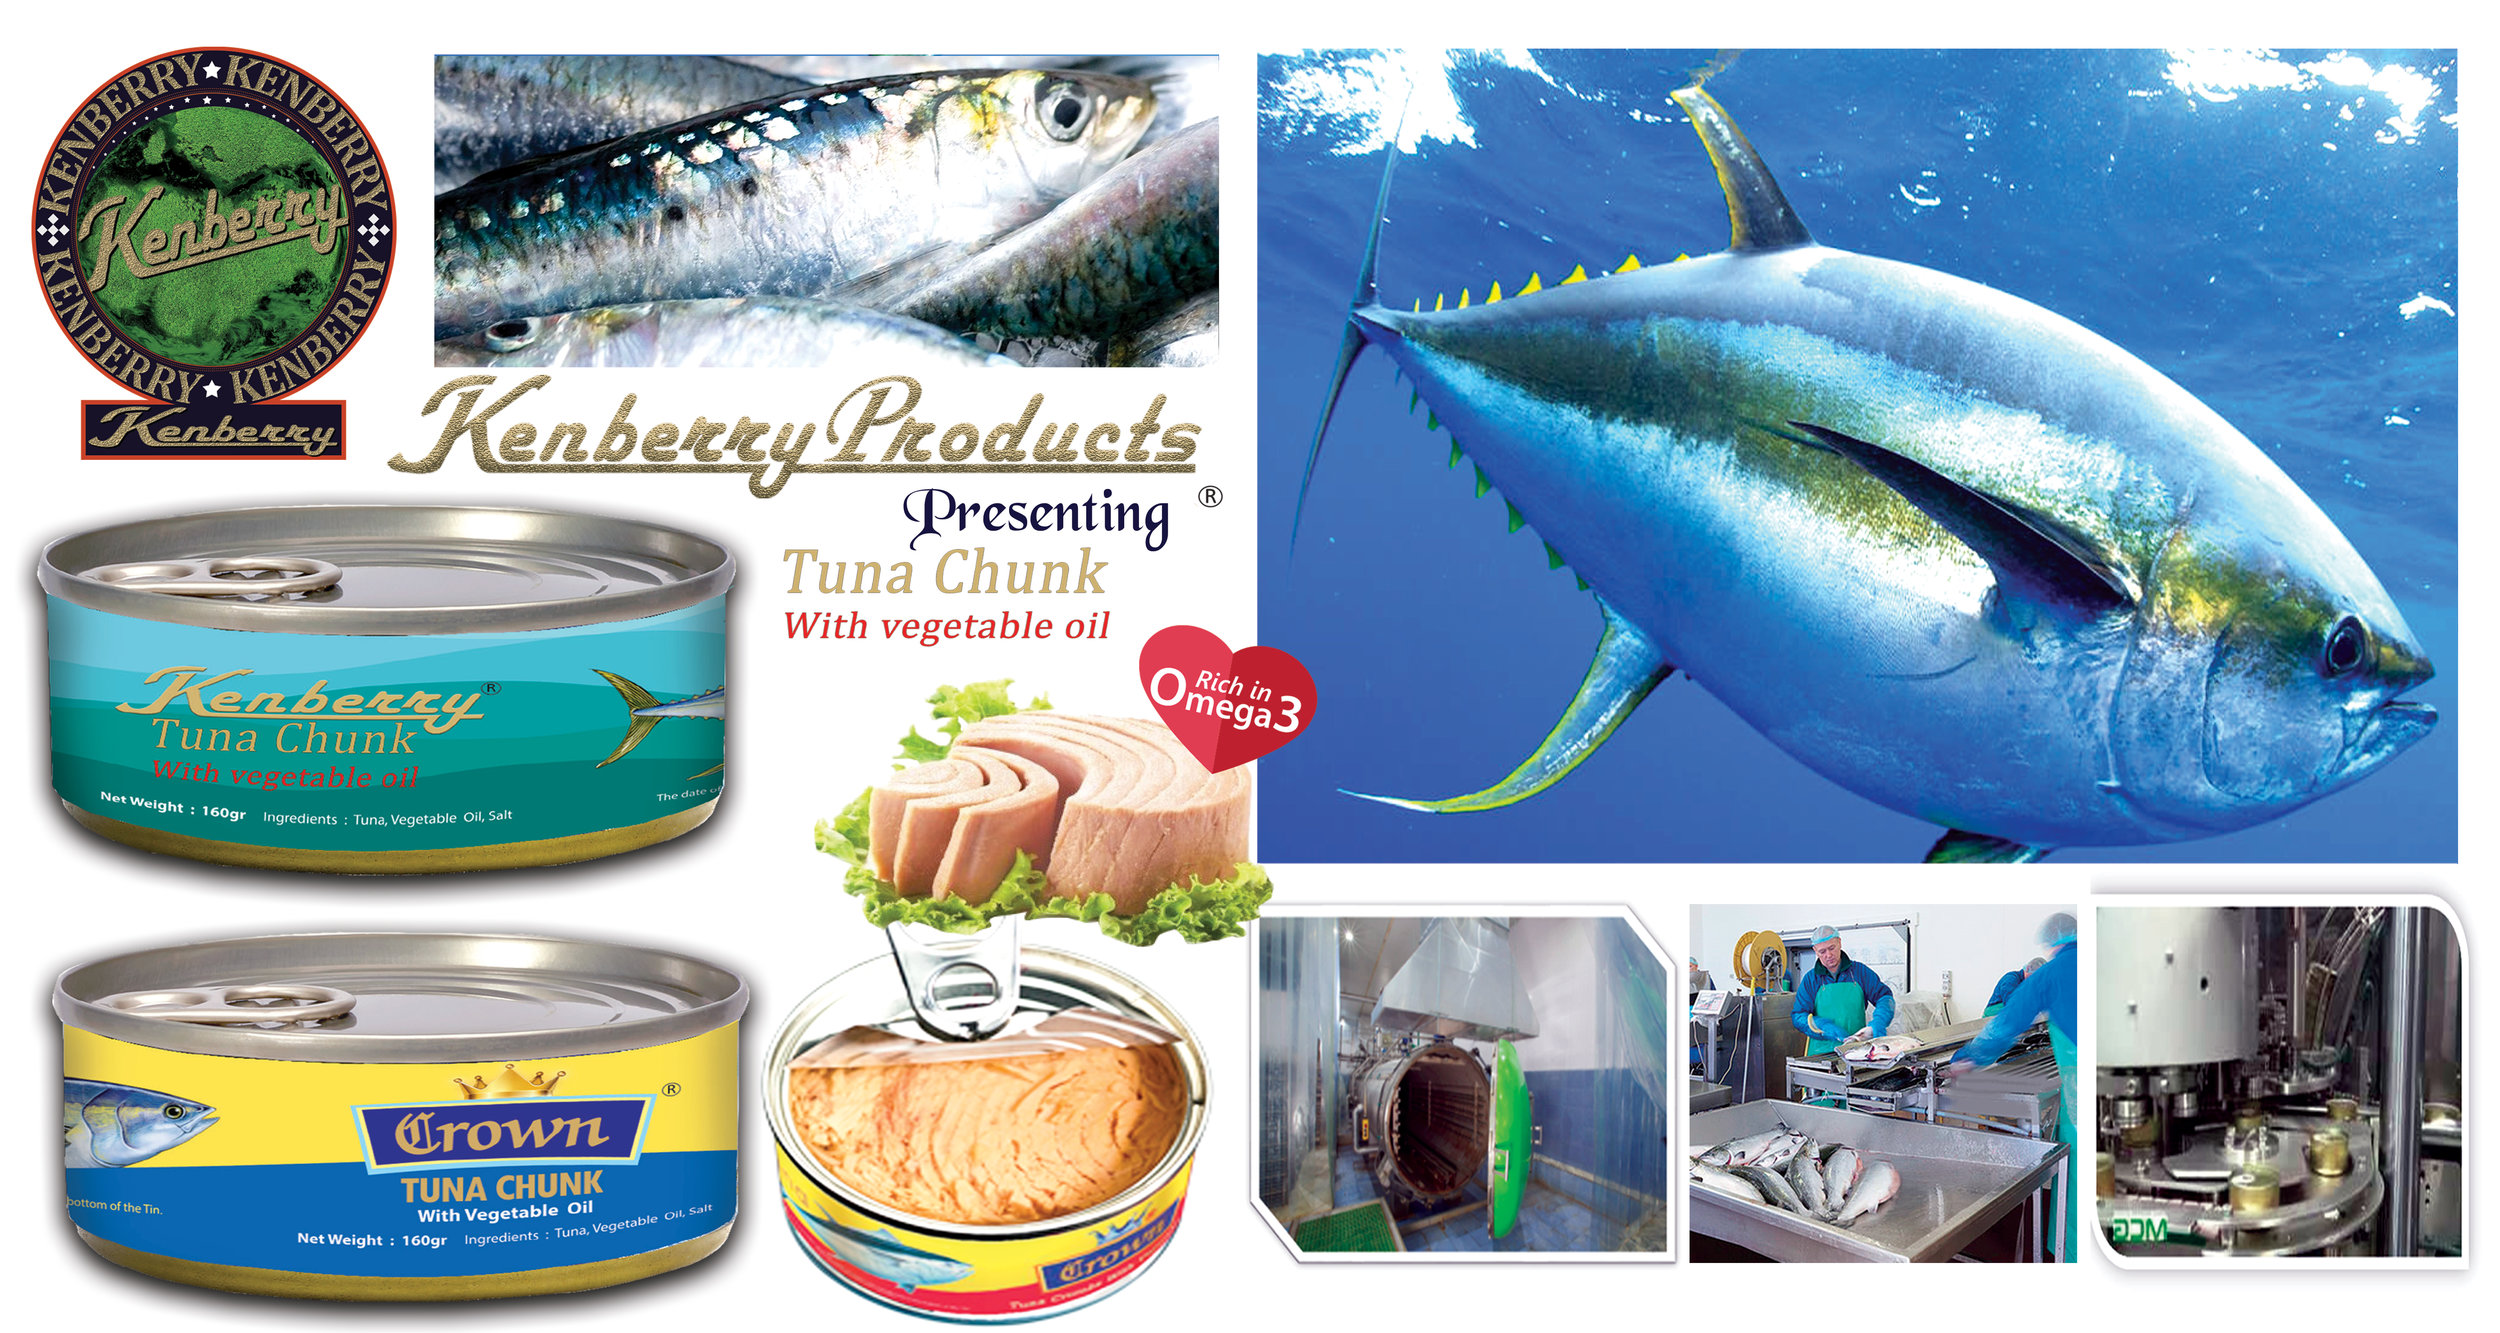 KENBERRY PRODUCTS